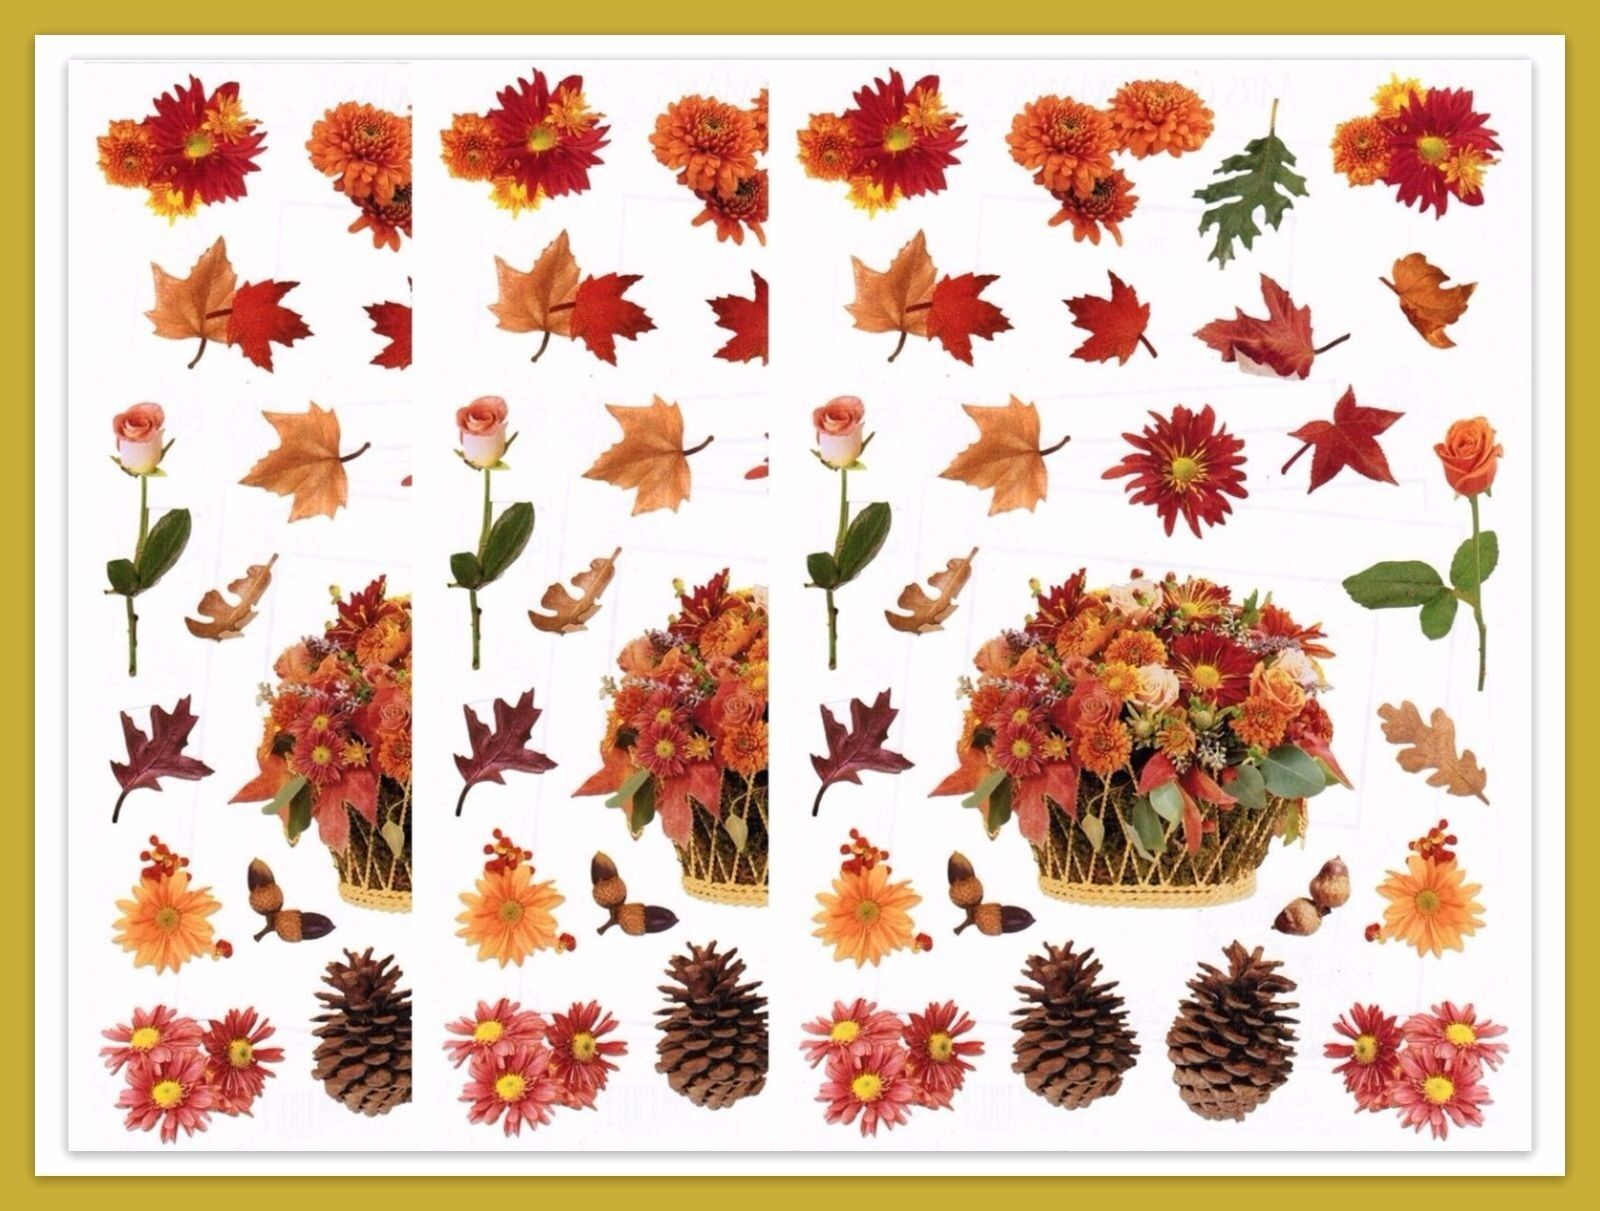 Autumn mrs grossmans 3 sheets fall rose daisy flower leaves picture 1 of 2 izmirmasajfo